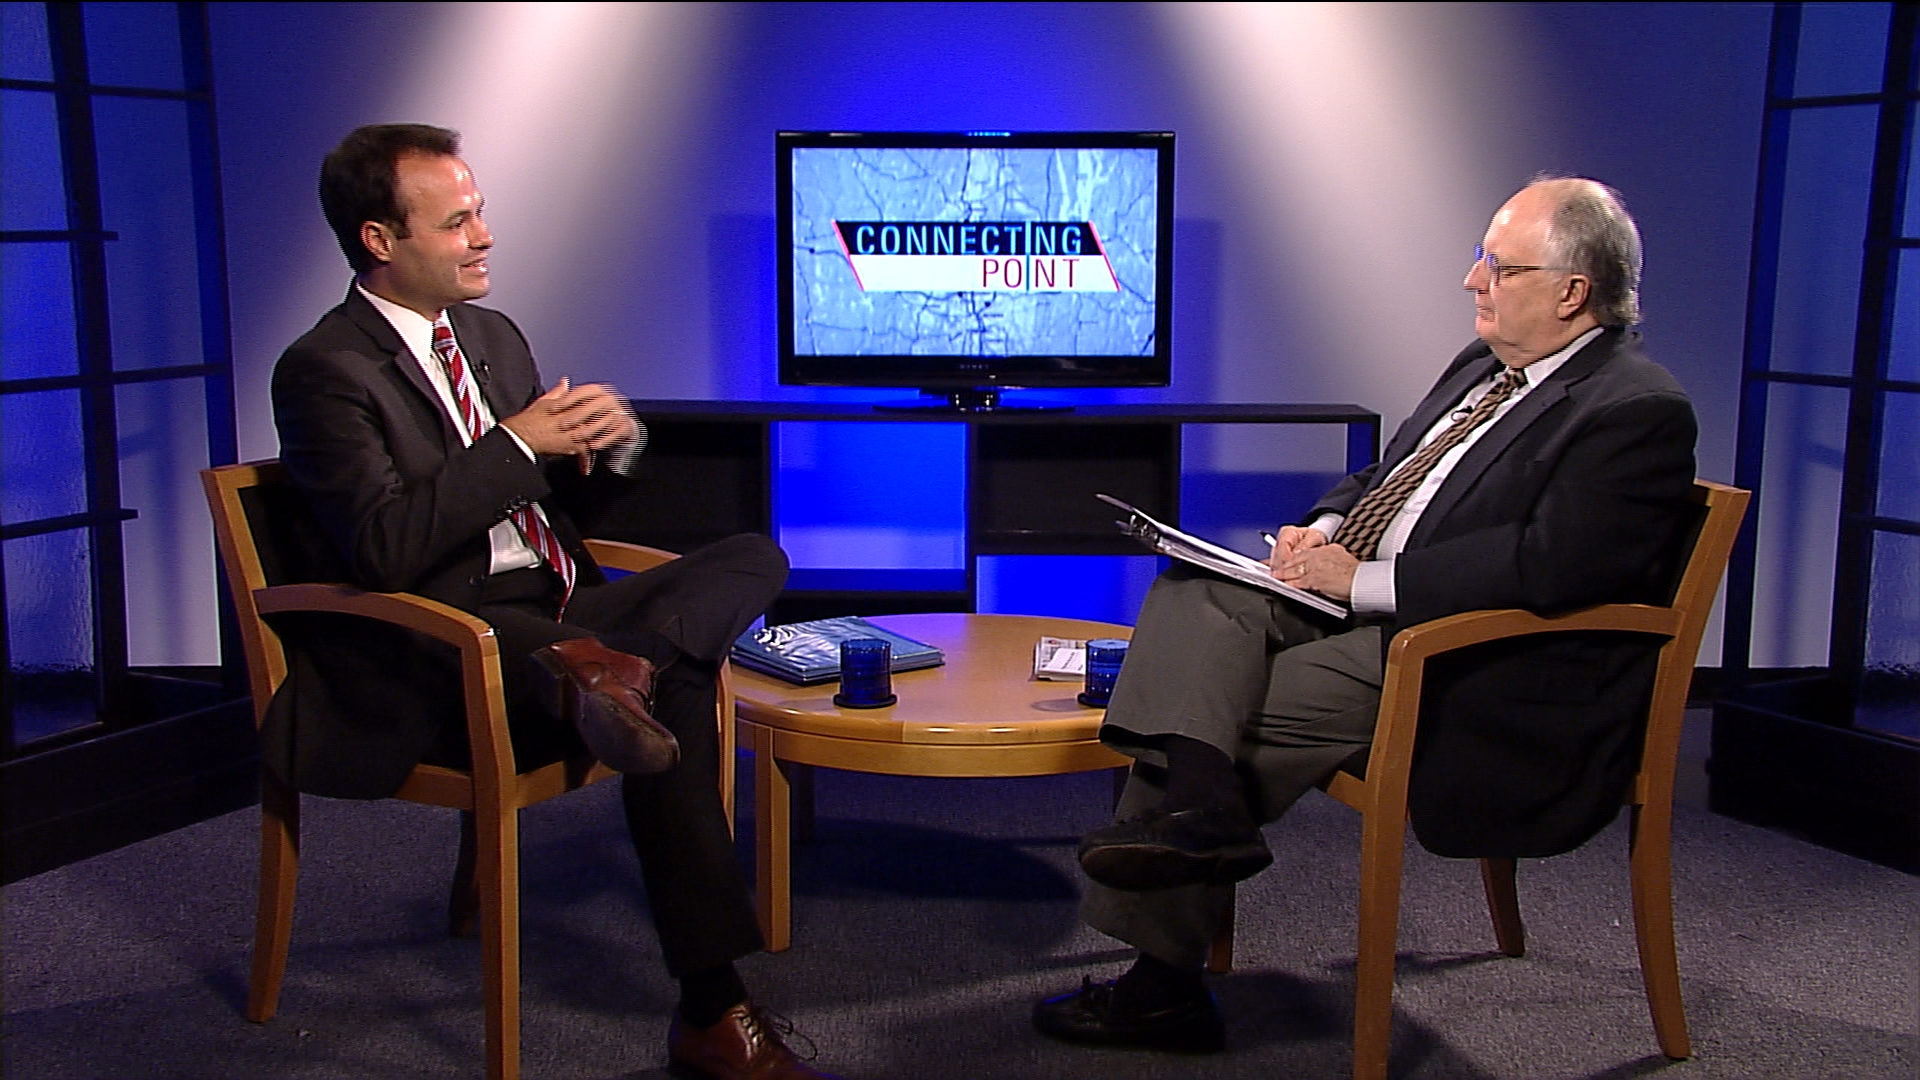 Sen. Eric Lesser discusses his work with the Democratic National Convention Platform Committee, and his participation at the 2016 Convention.